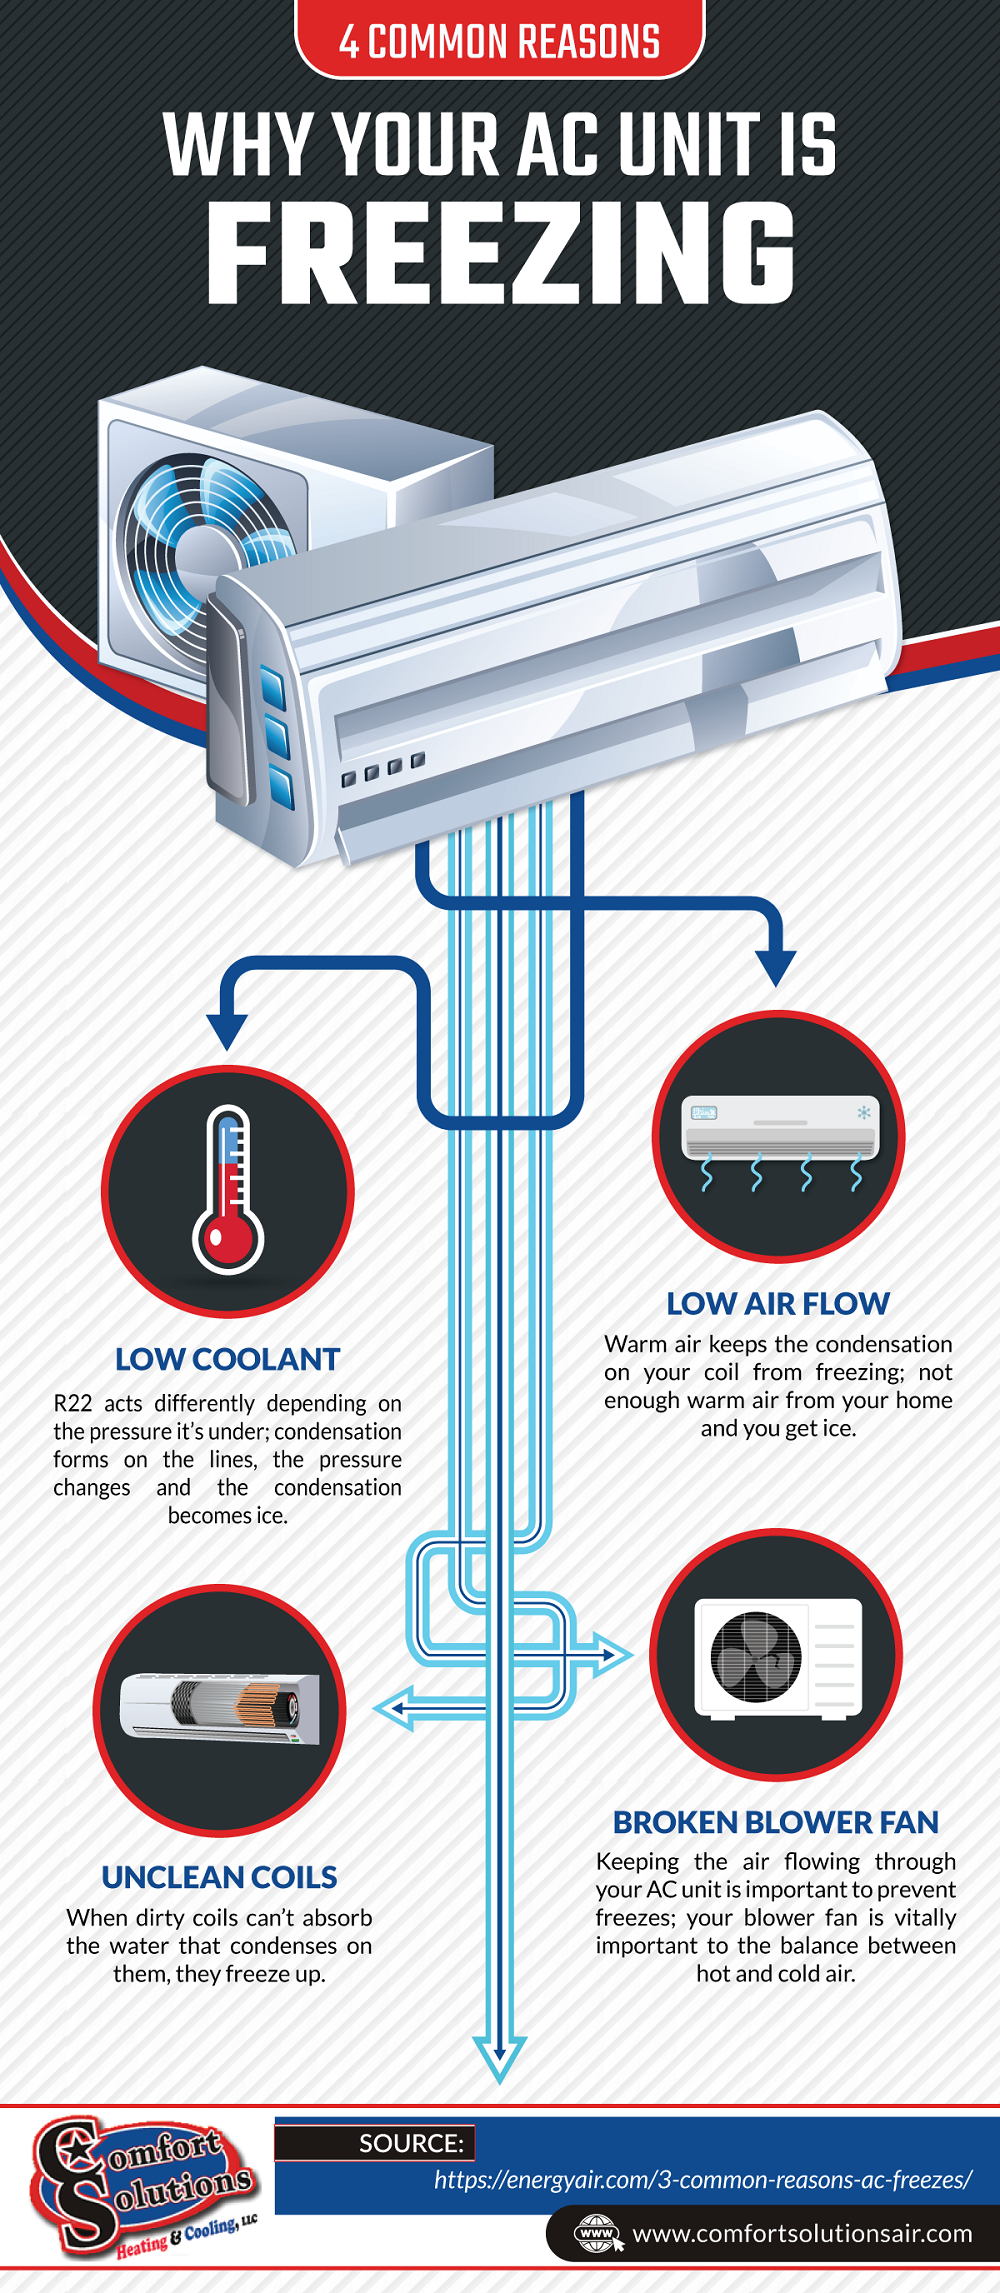 4 Common Reasons Why Your AC Unit Is Freezing Air